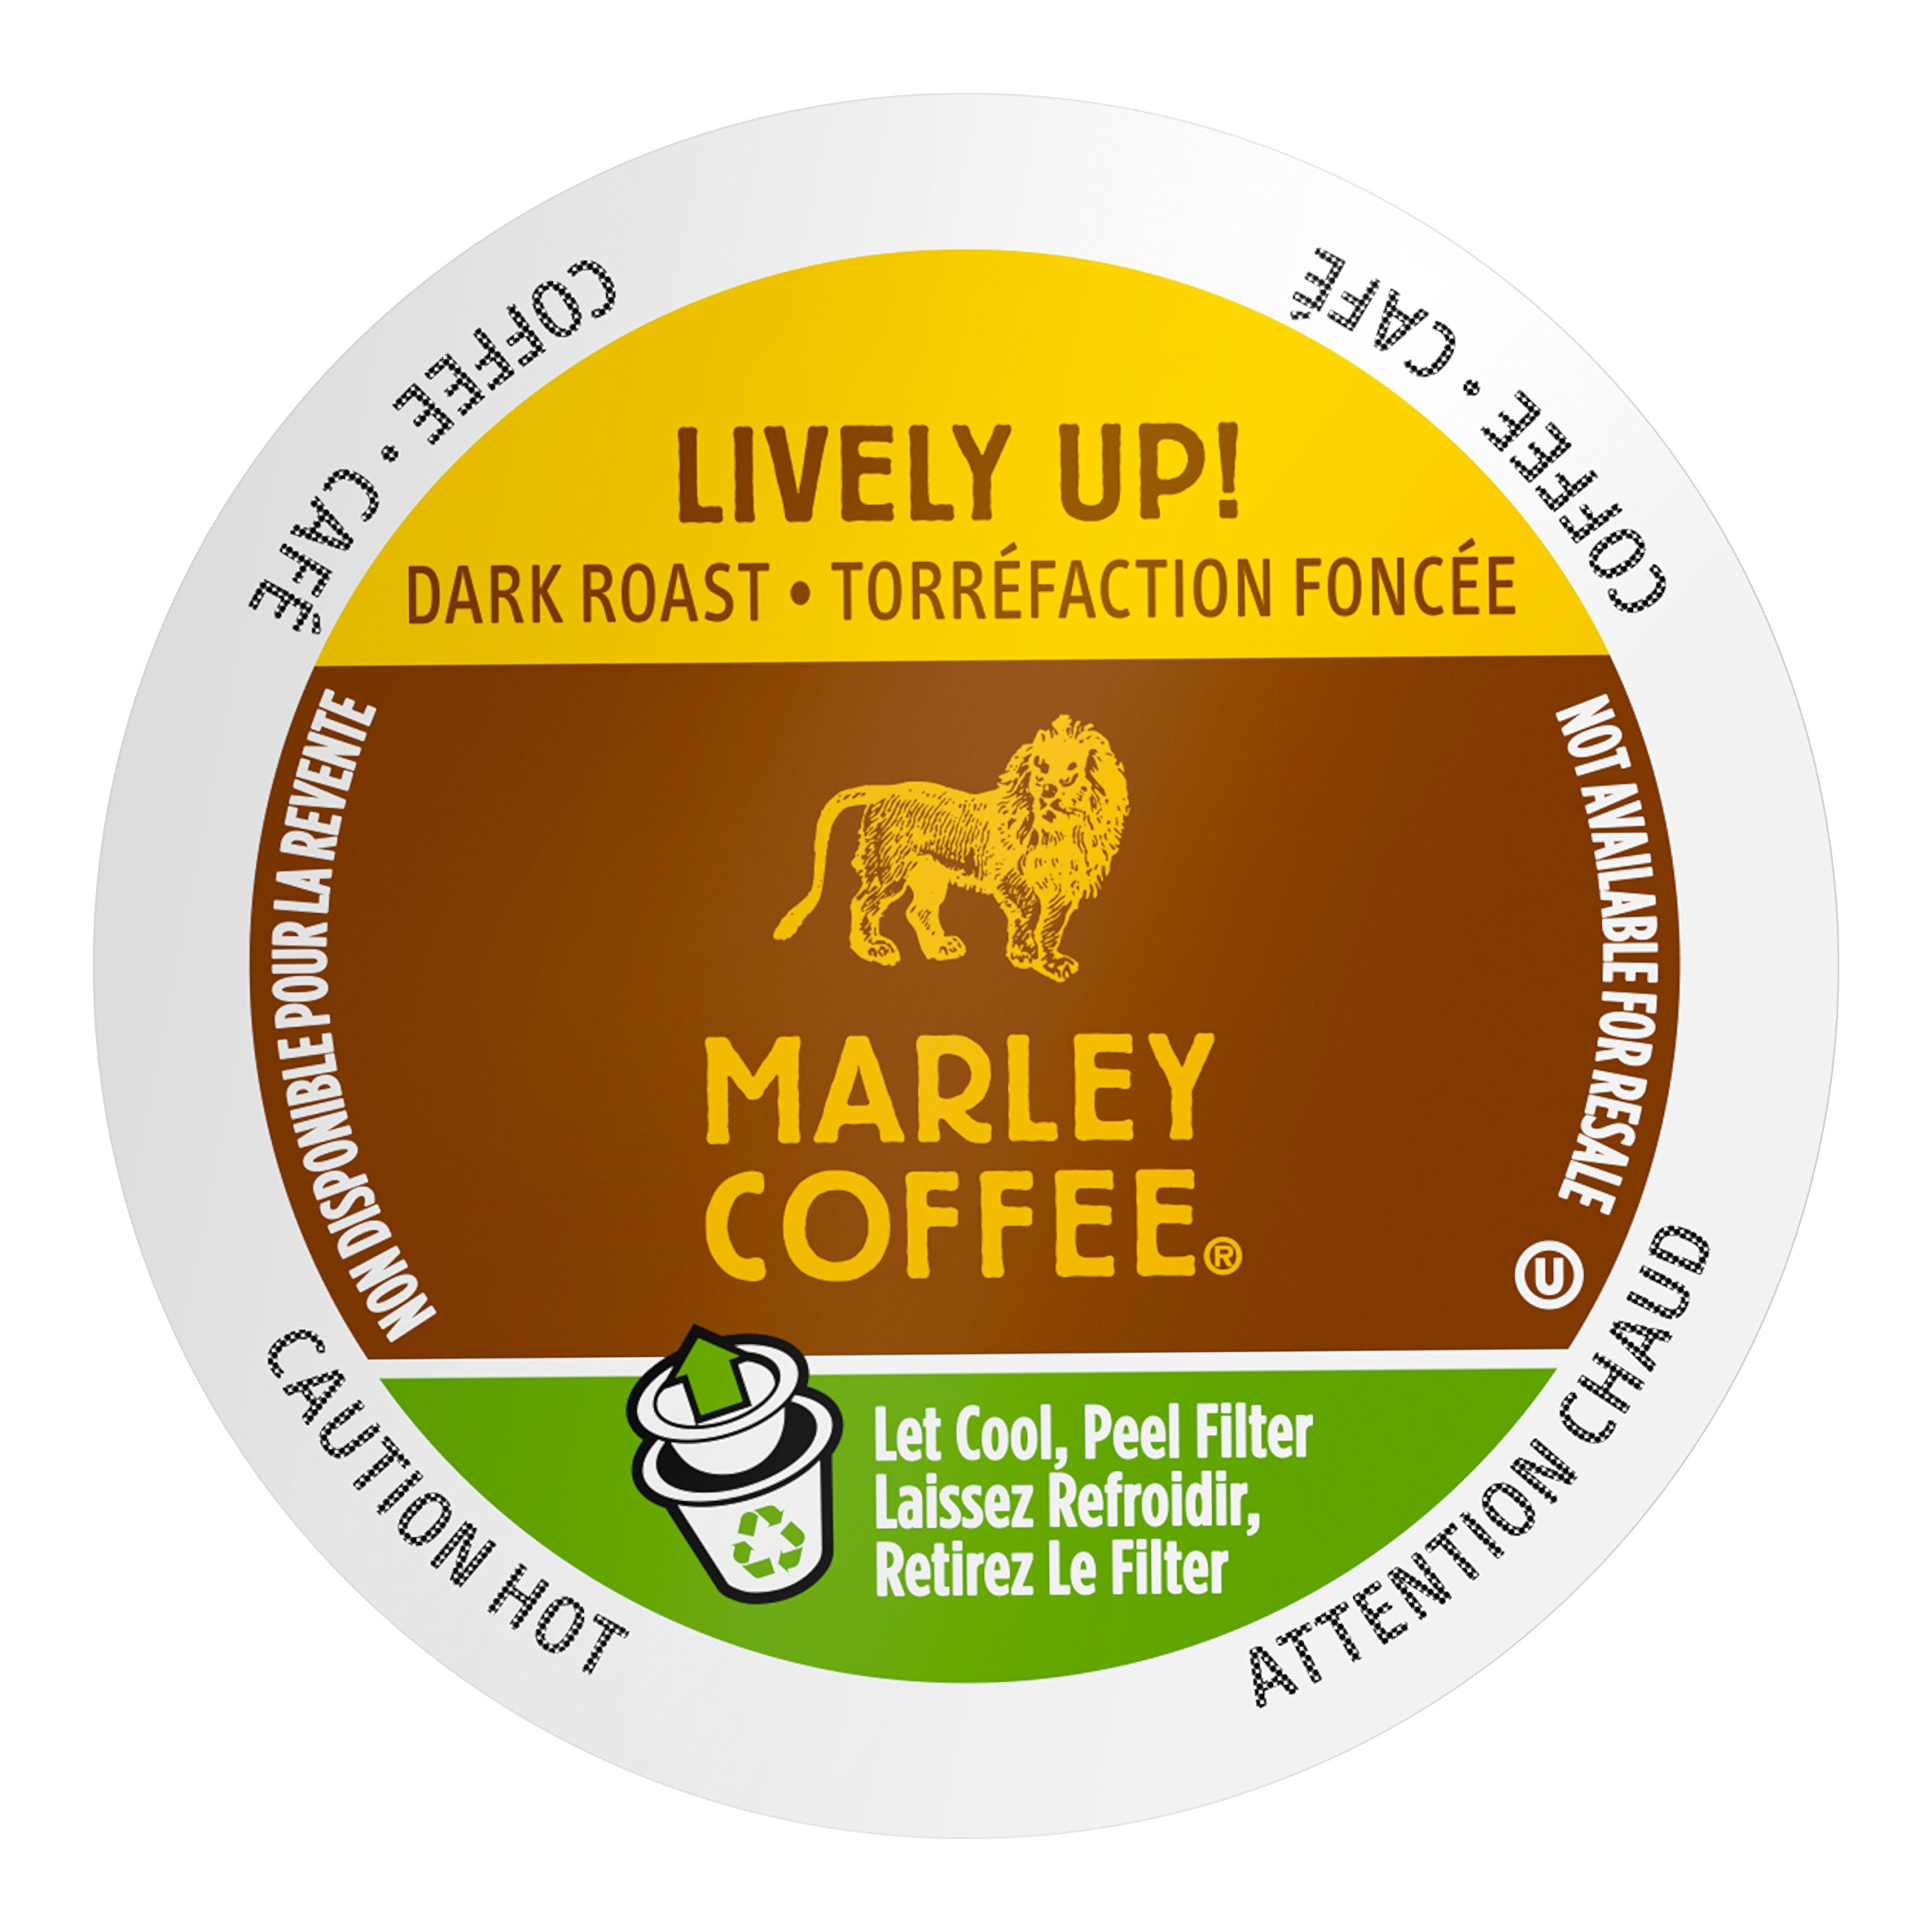 Marley Coffee Single Serve K-cup Capsules, Lively Up, Medium-Dark Roast